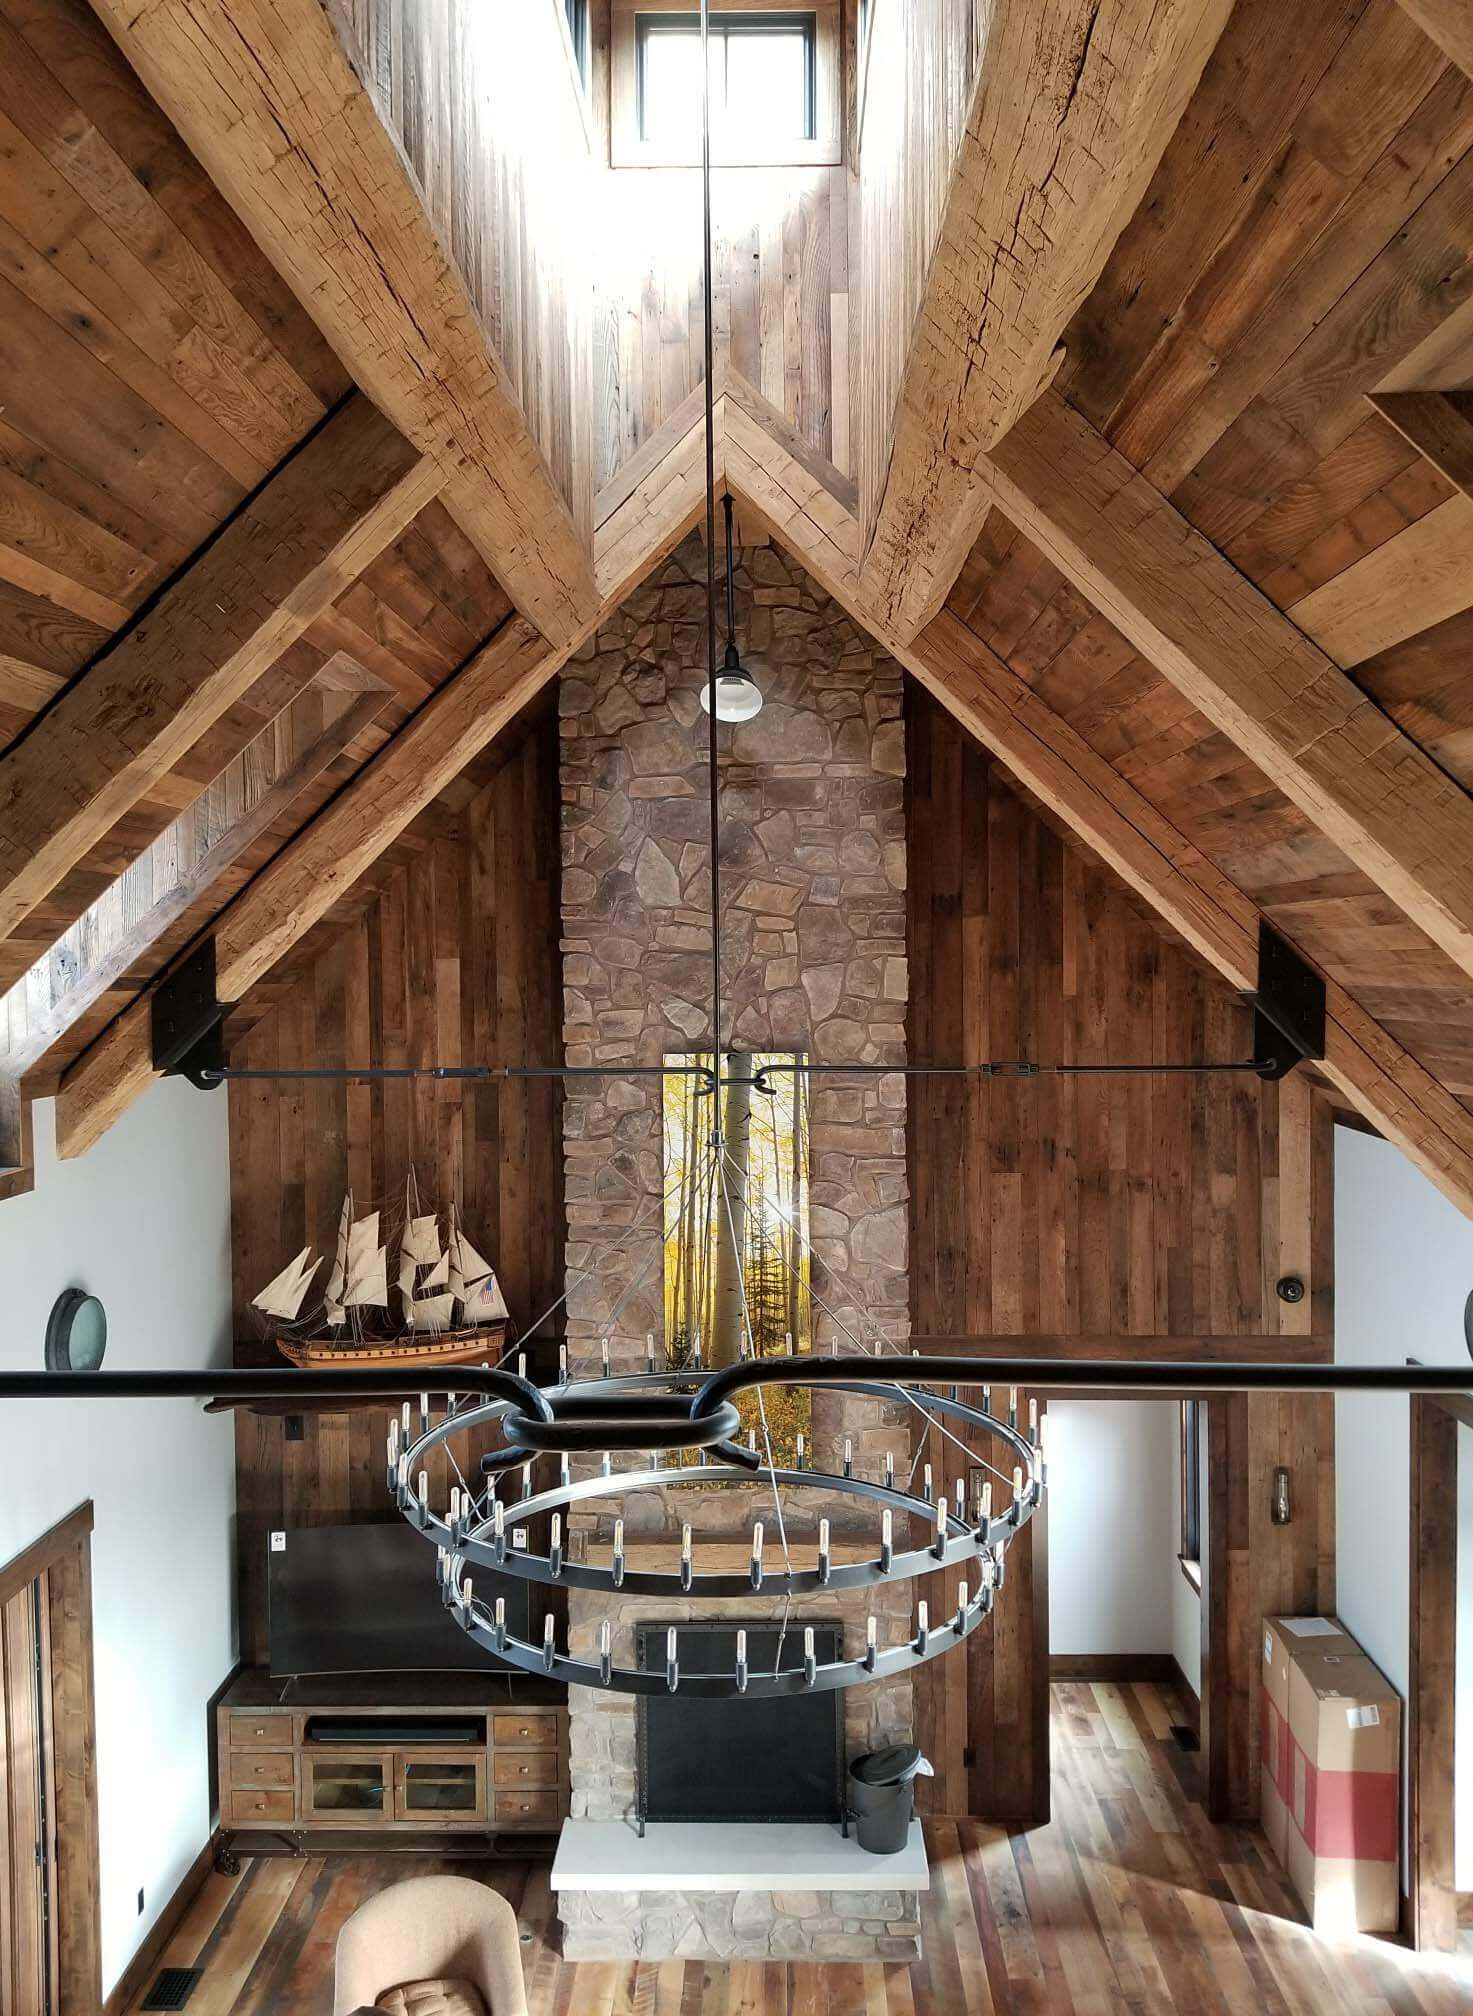 Reclaimed wood vaulted ceiling